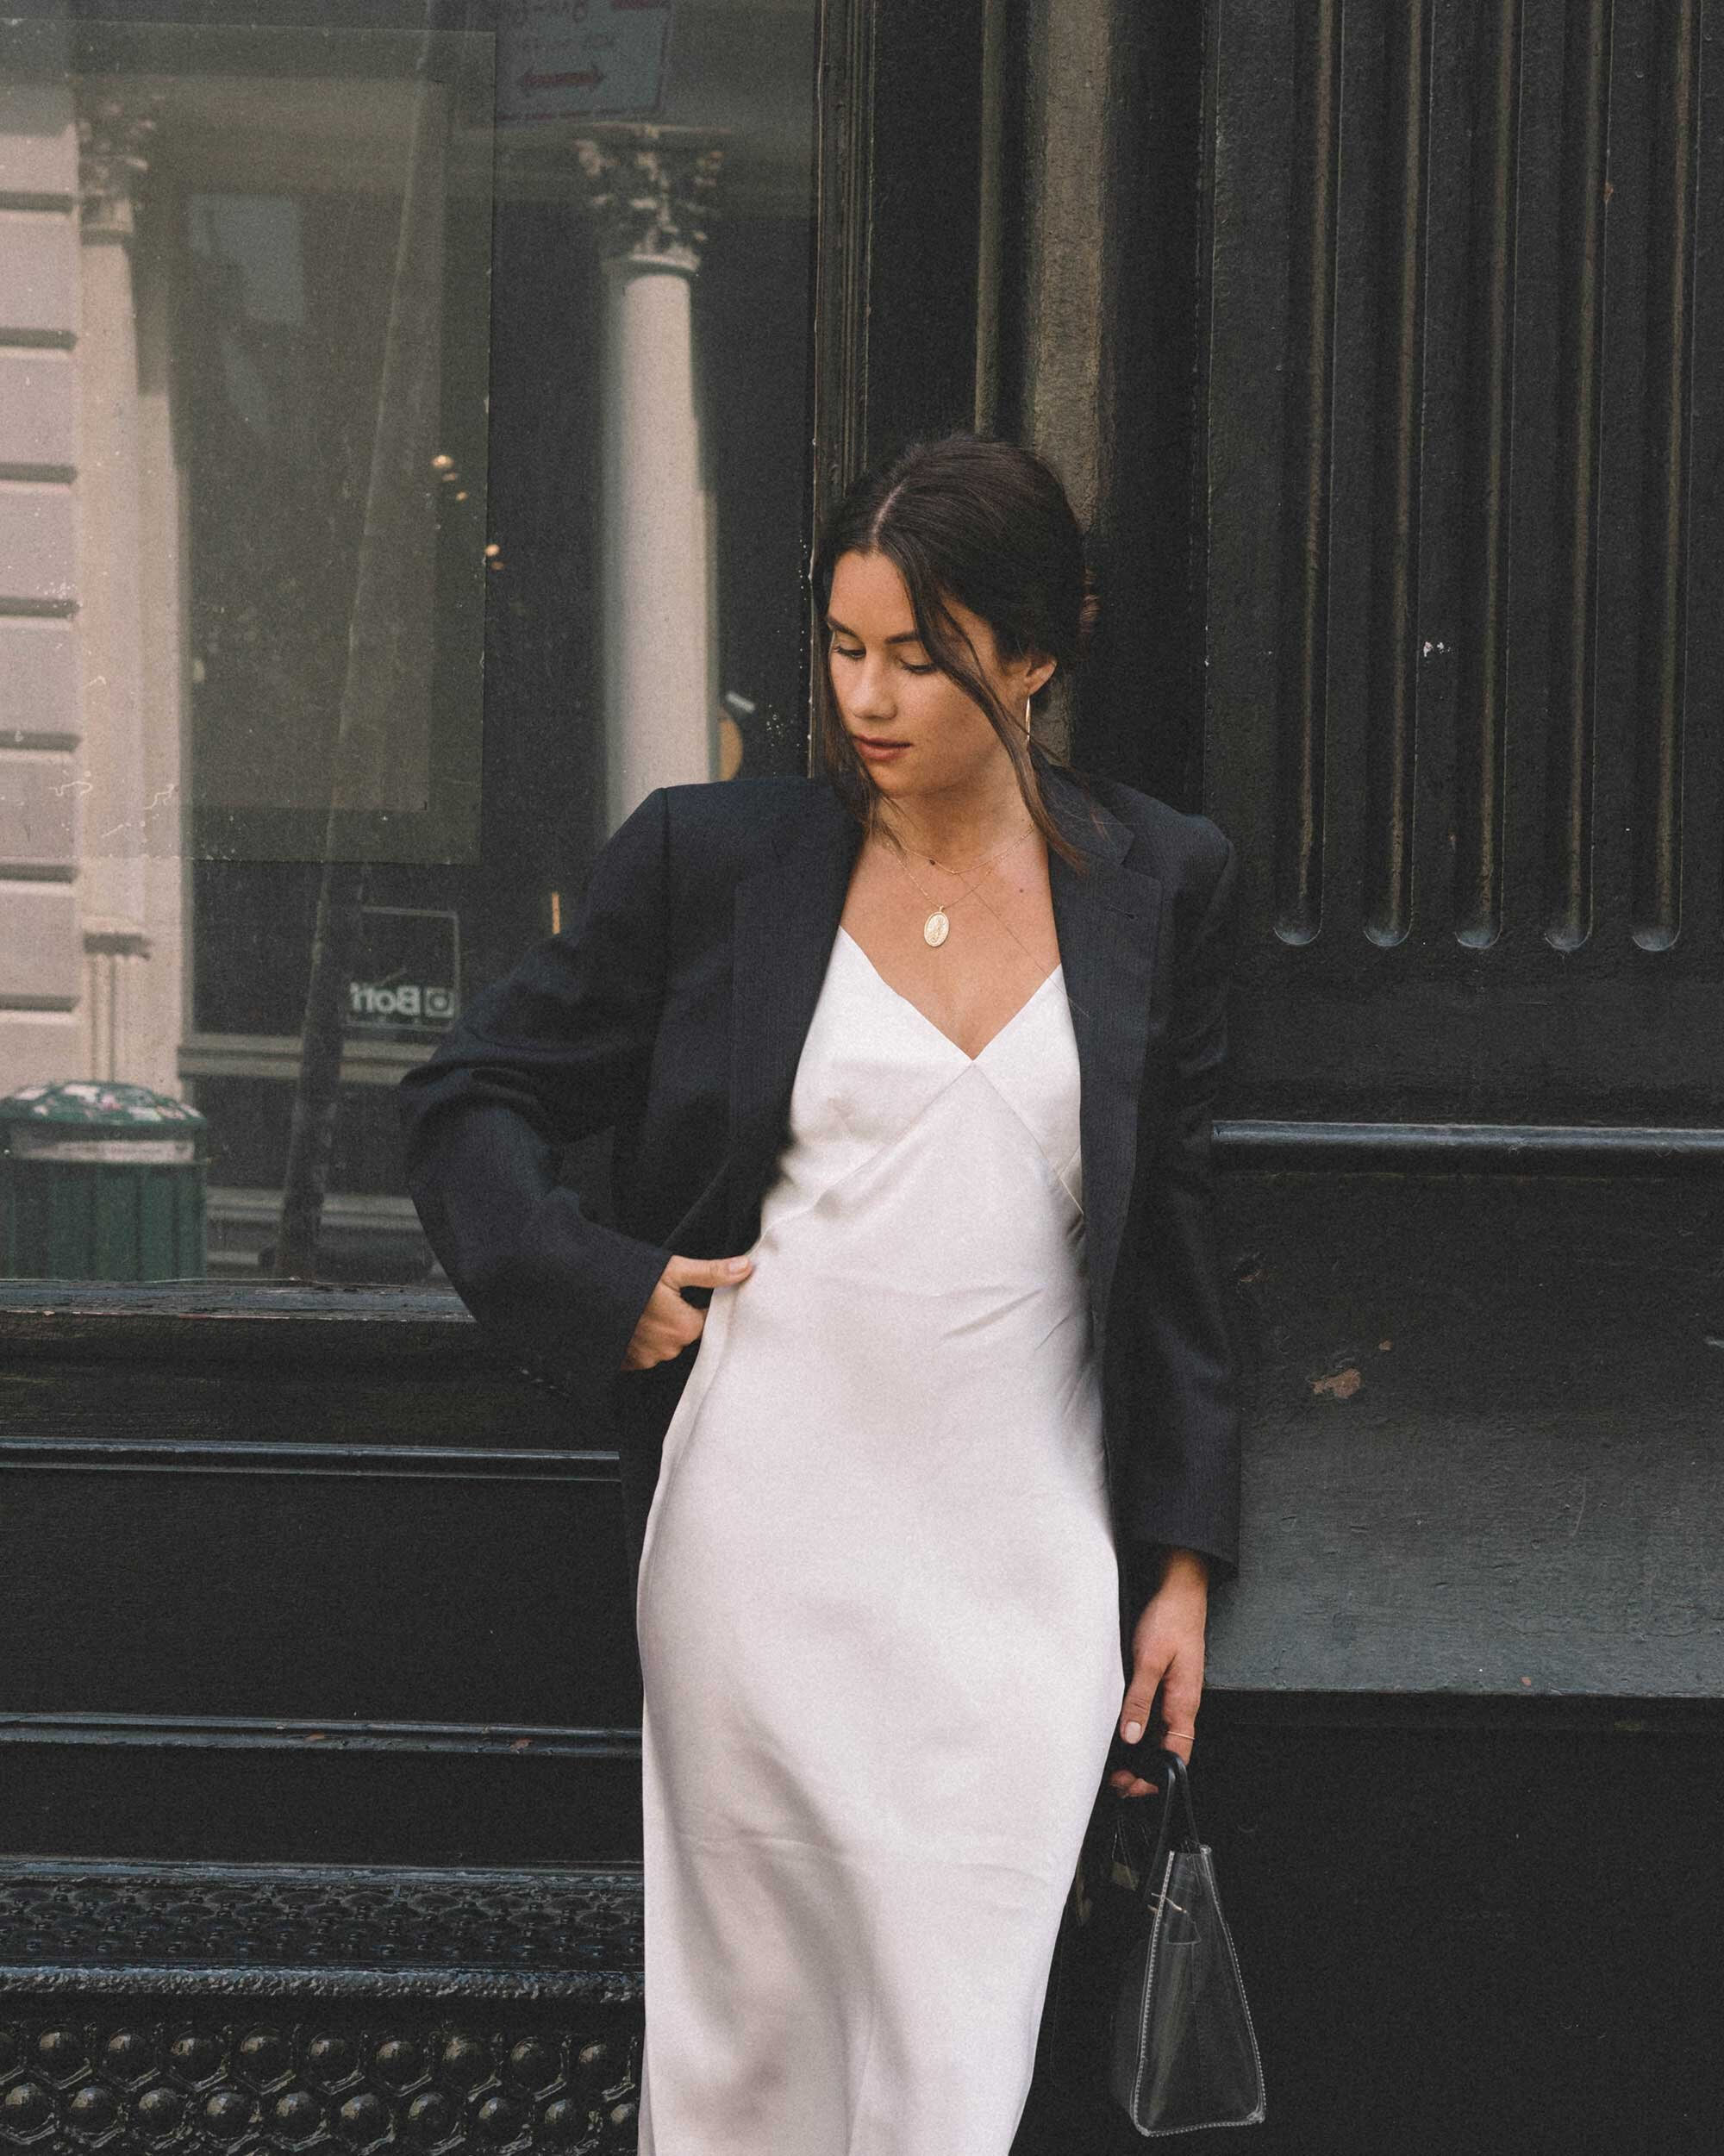 Sarah Butler of Sarah Styles Seattle wears Olivia von Halle Issa Ivory Slip dress and black blazer | @sarahchristine -6.jpg